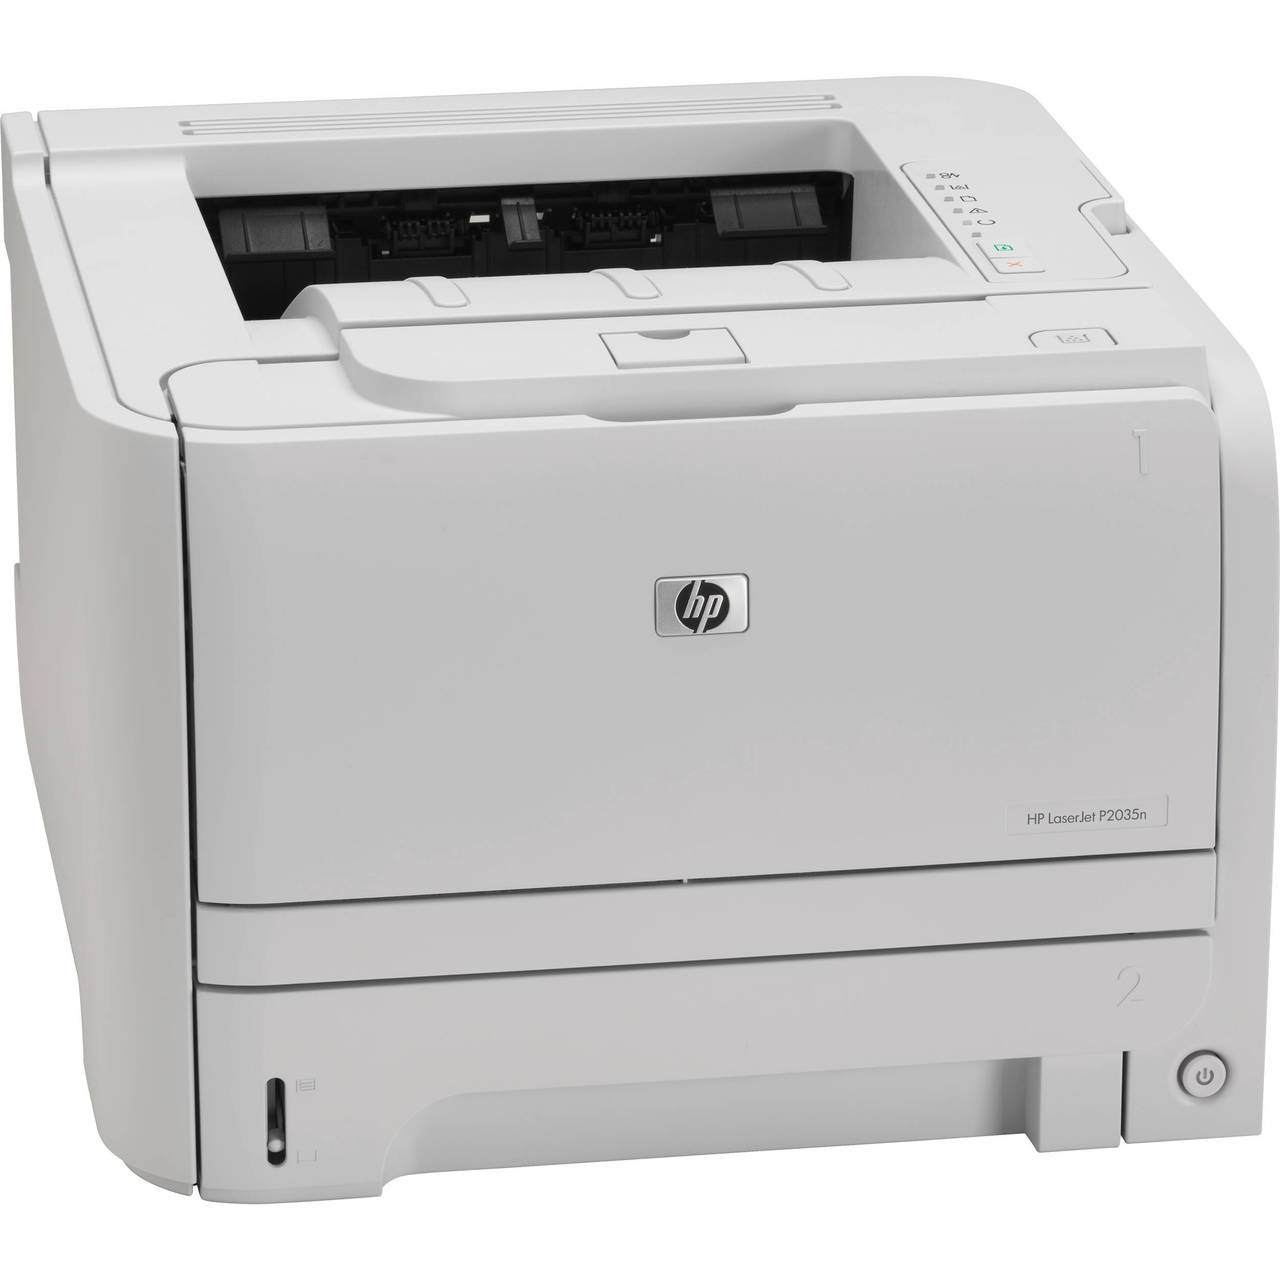 HP LaserJet P2035N - CE462A - HP Laser Printer for sale